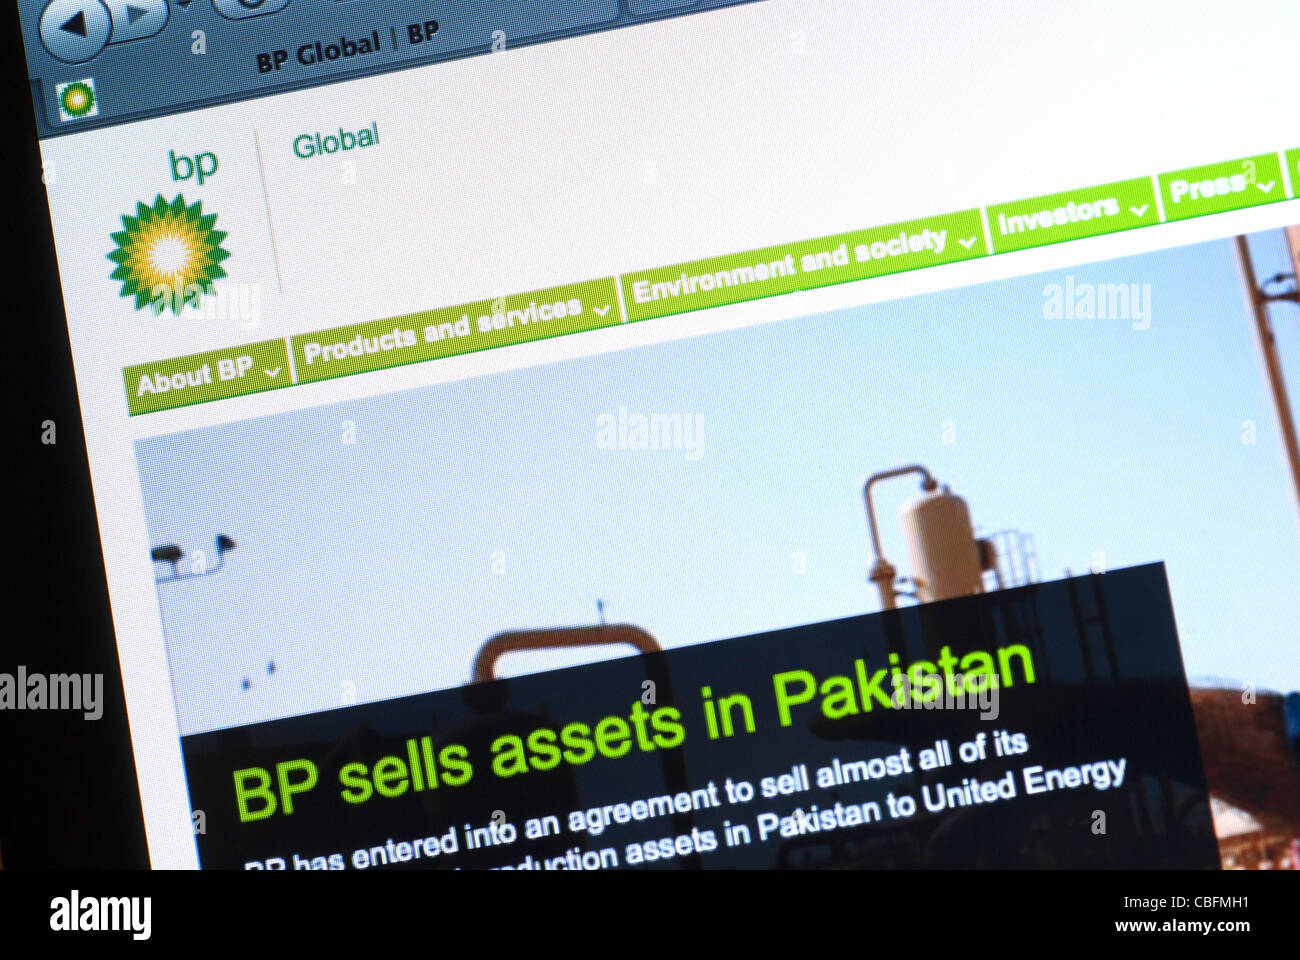 british petroleum plc and john browne a culture of risk beyond petroleum British petroleum (plc) and john browne: a culture of risk beyond petroleum analyze how the critical success factors (csfs) apply to the facts of the case study provide examples to support your analysis.